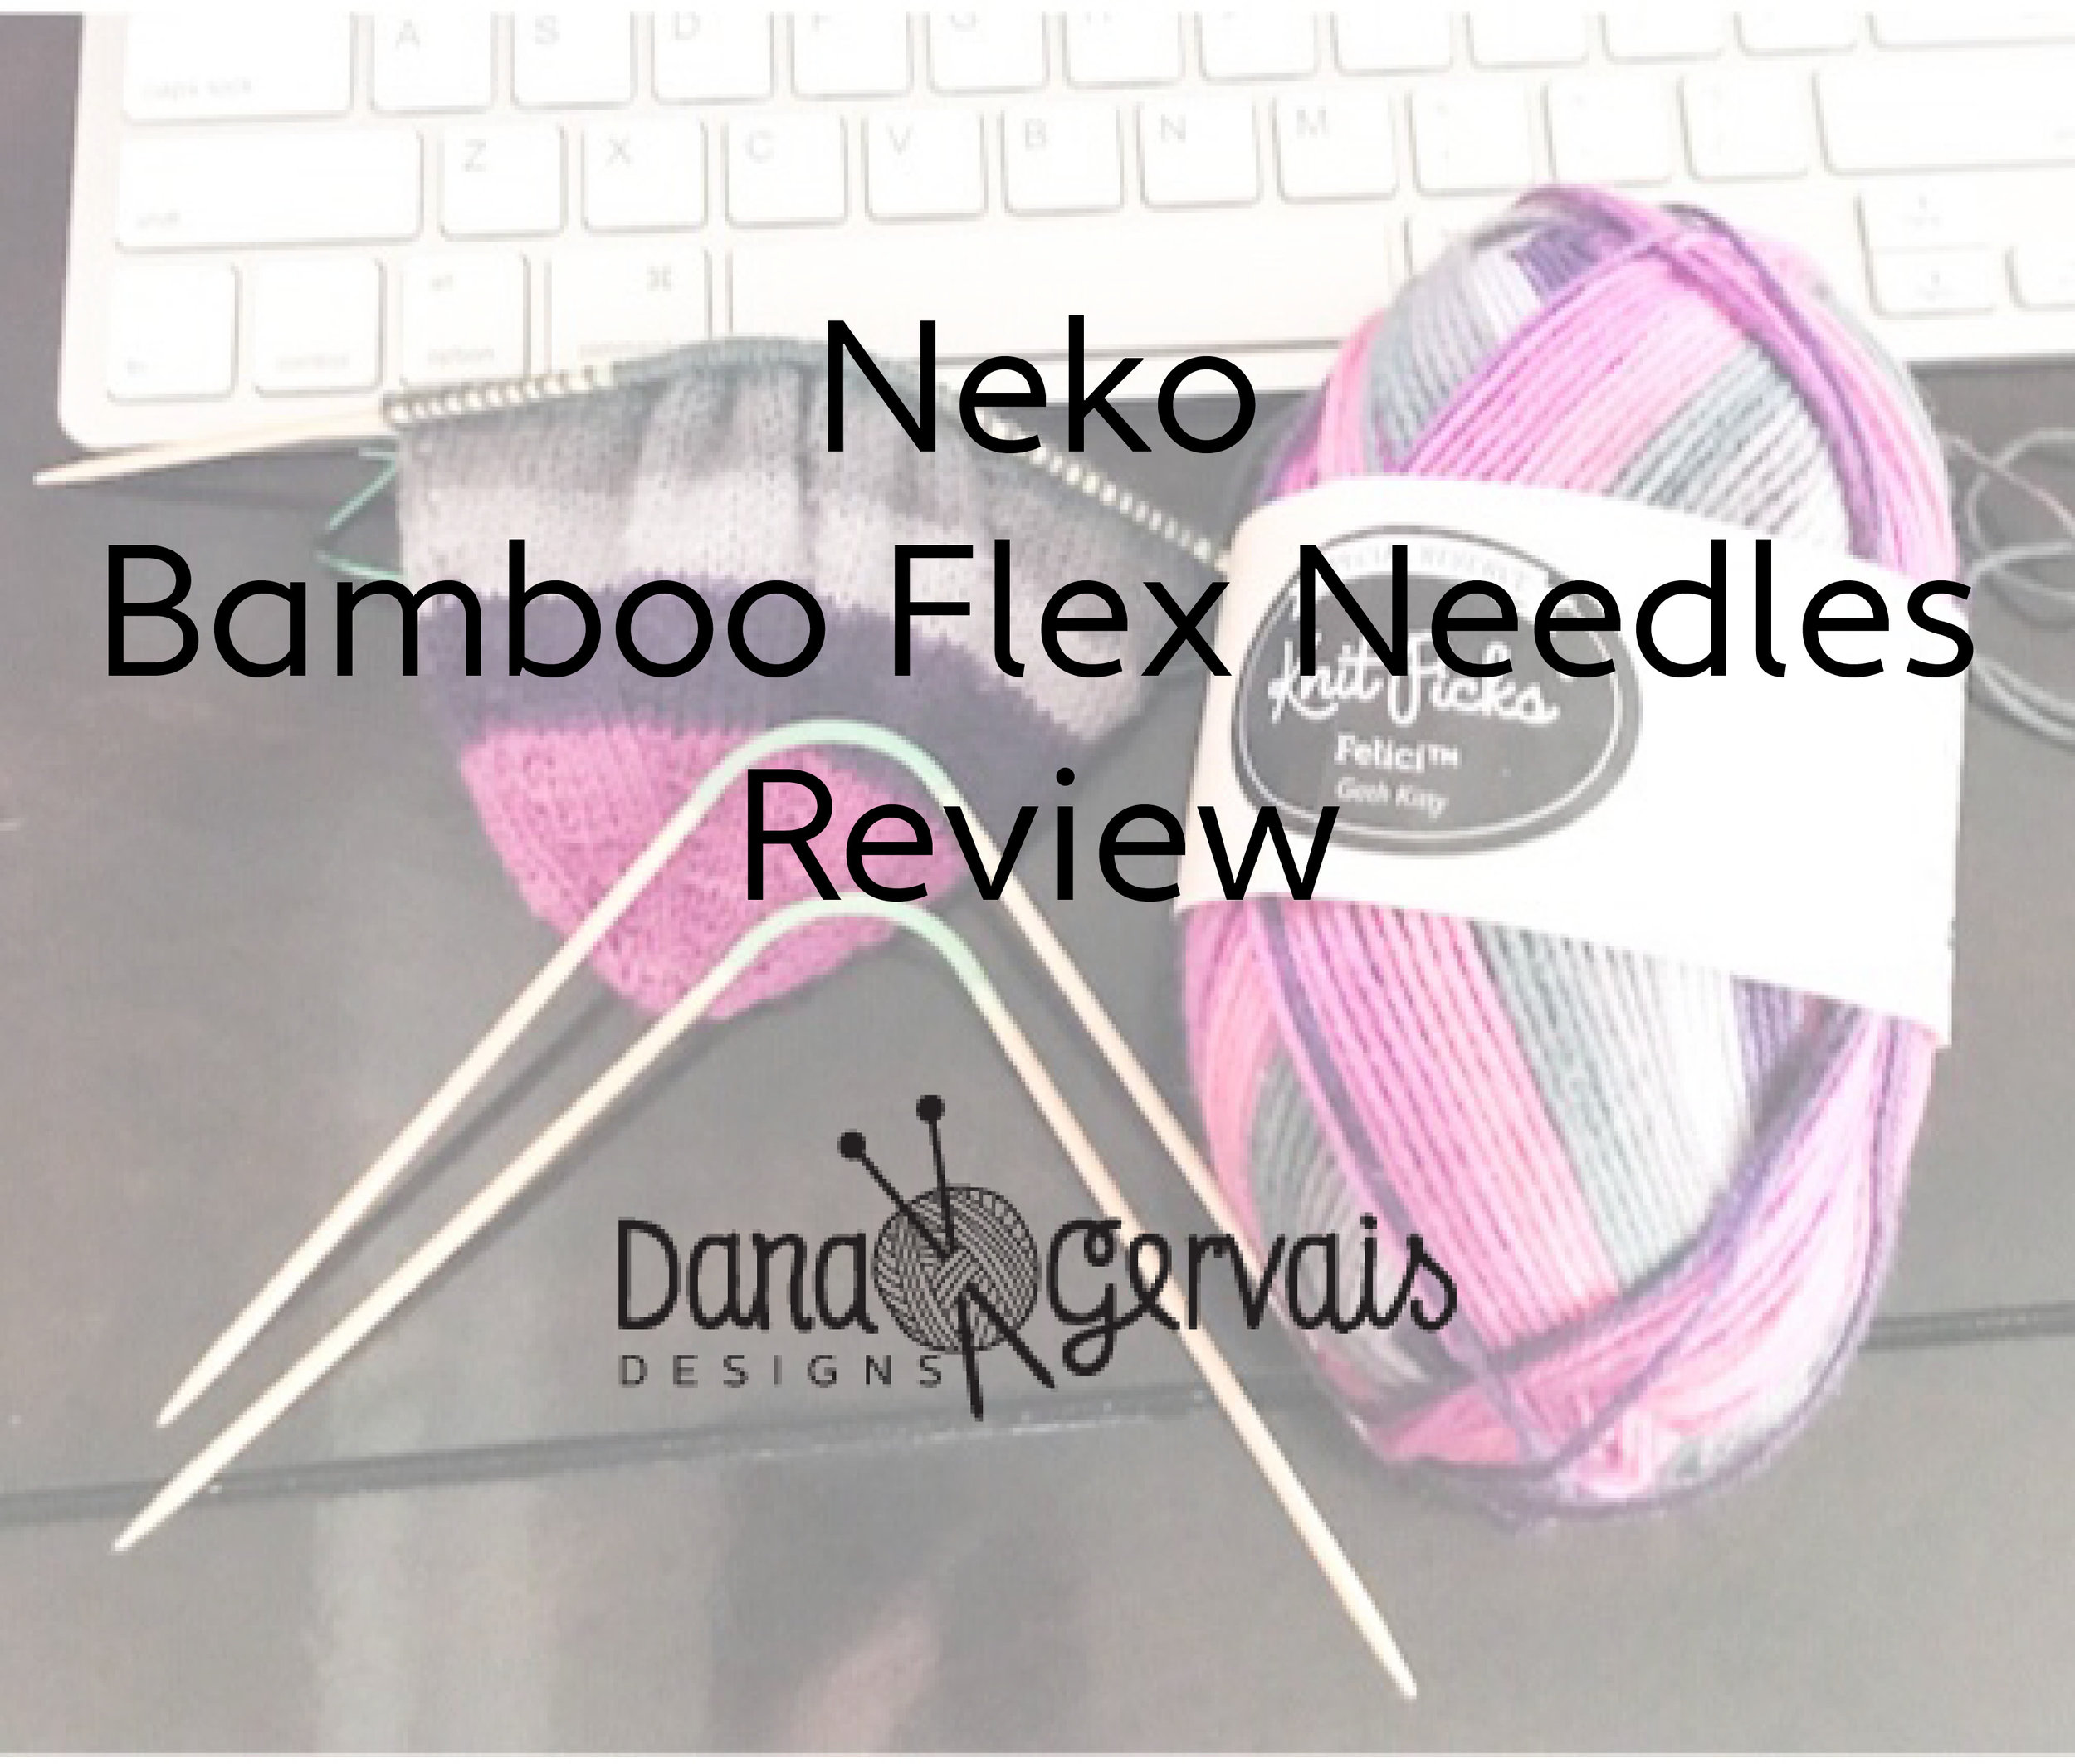 neko bamboo needle review.jpg